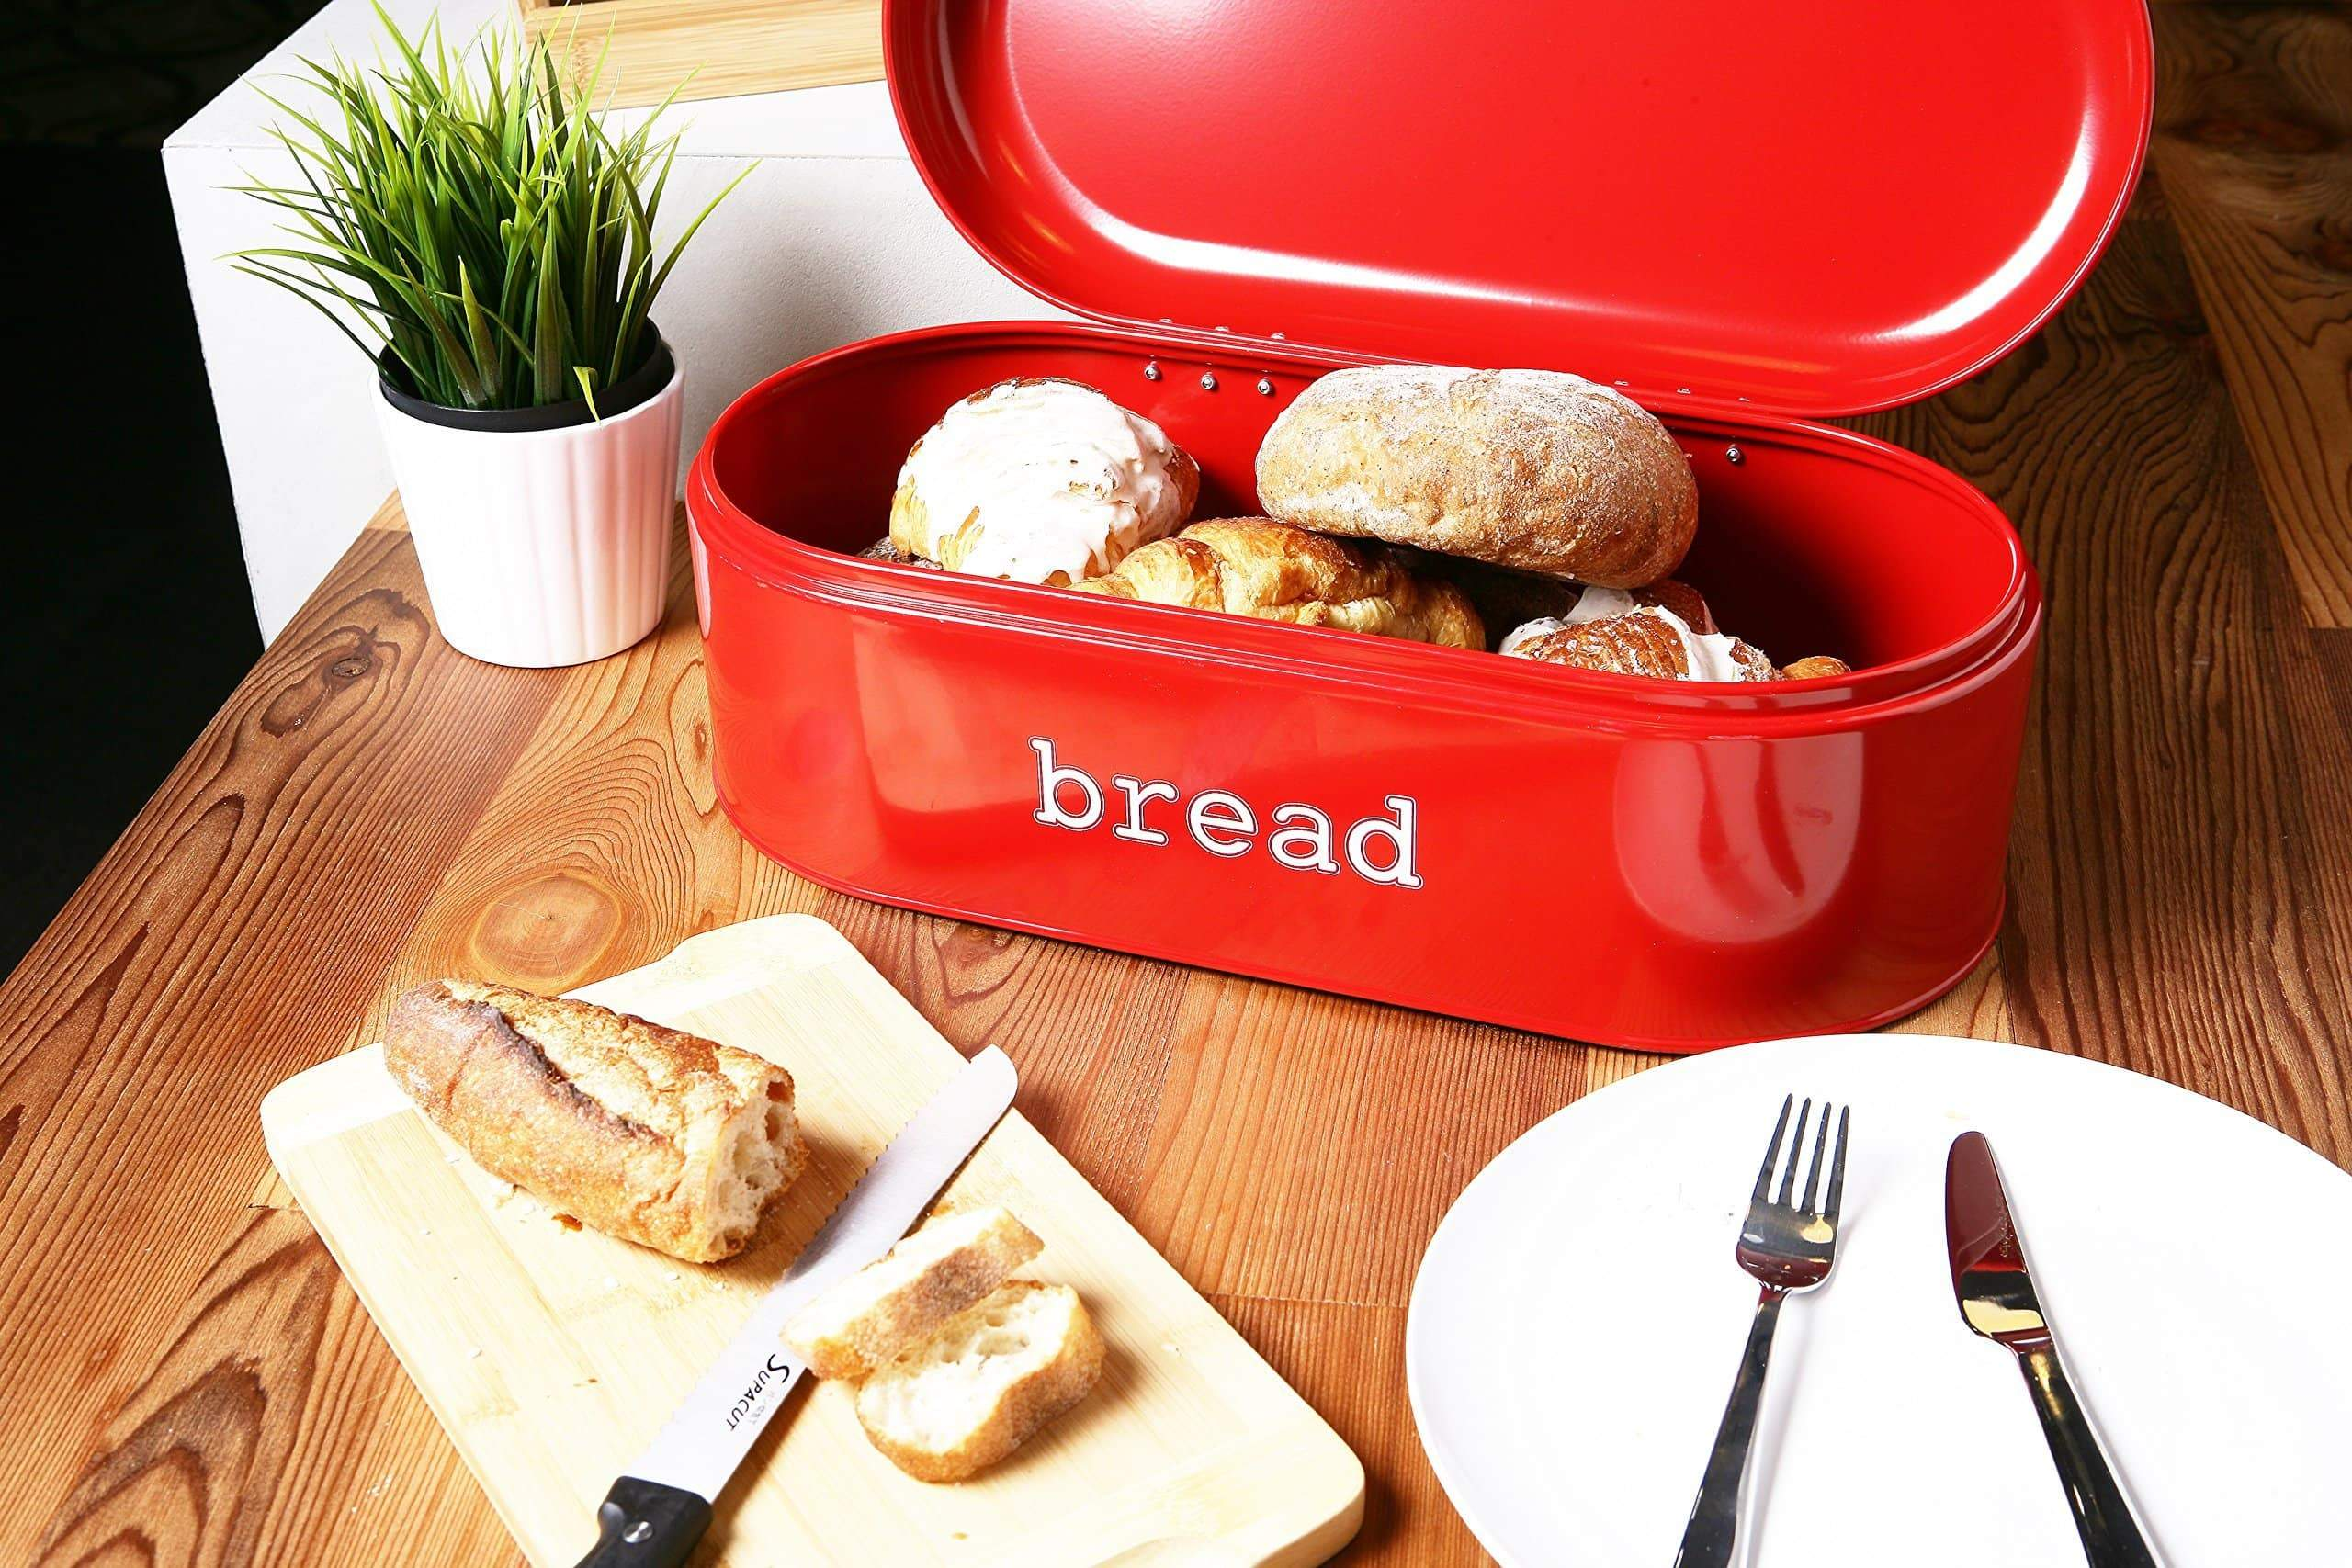 Heavy duty large bread box for kitchen counter bread bin storage container with lid metal vintage retro design for loaves sliced bread pastries red 17 x 9 x 6 inches